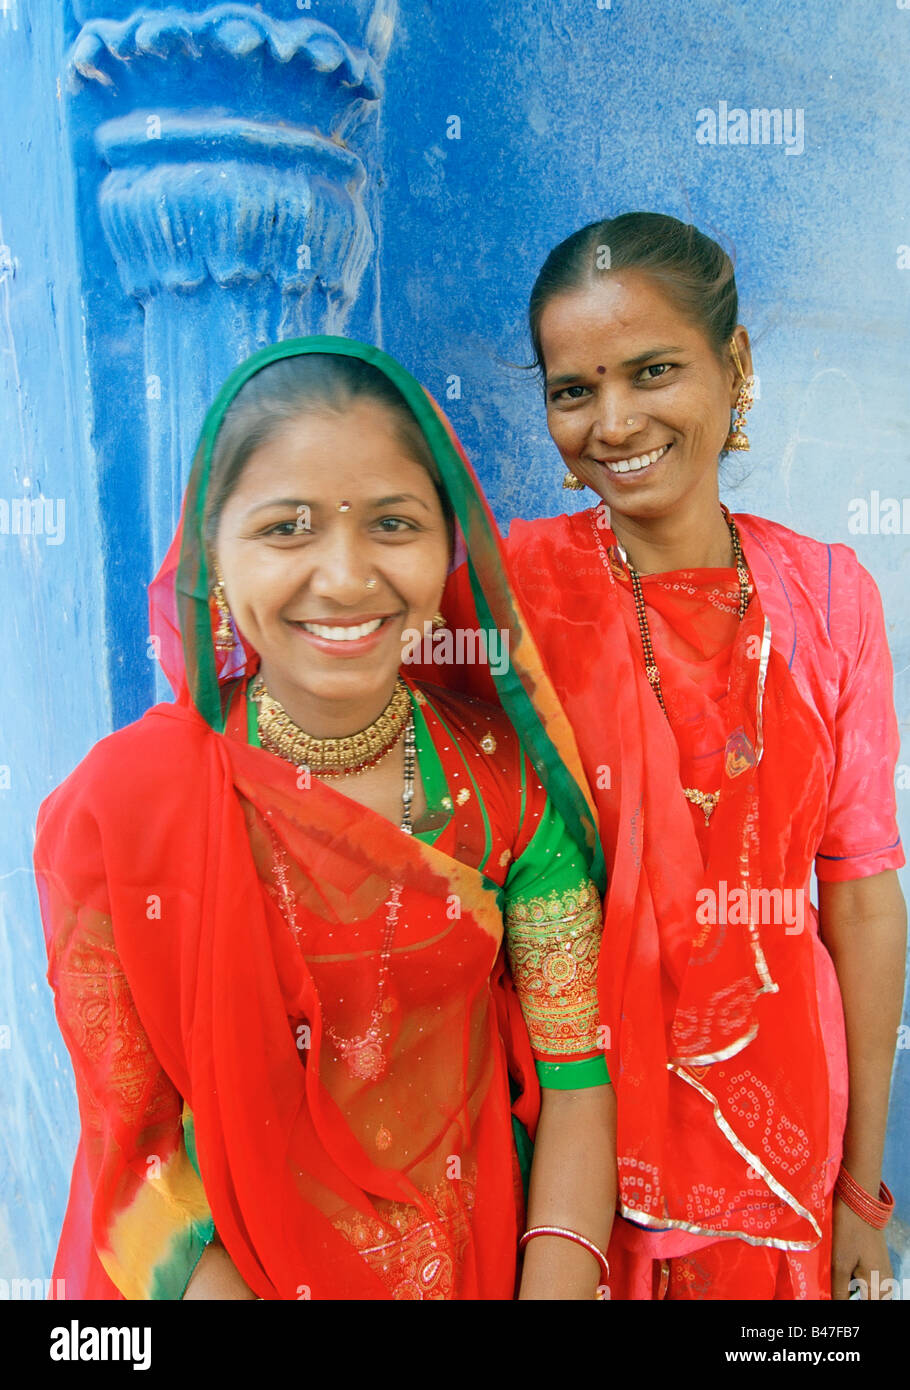 ASIA, India, Jodphur, Rajasthan, Local Indian Women in traditional Sari dress and jewelry - MR - Stock Image